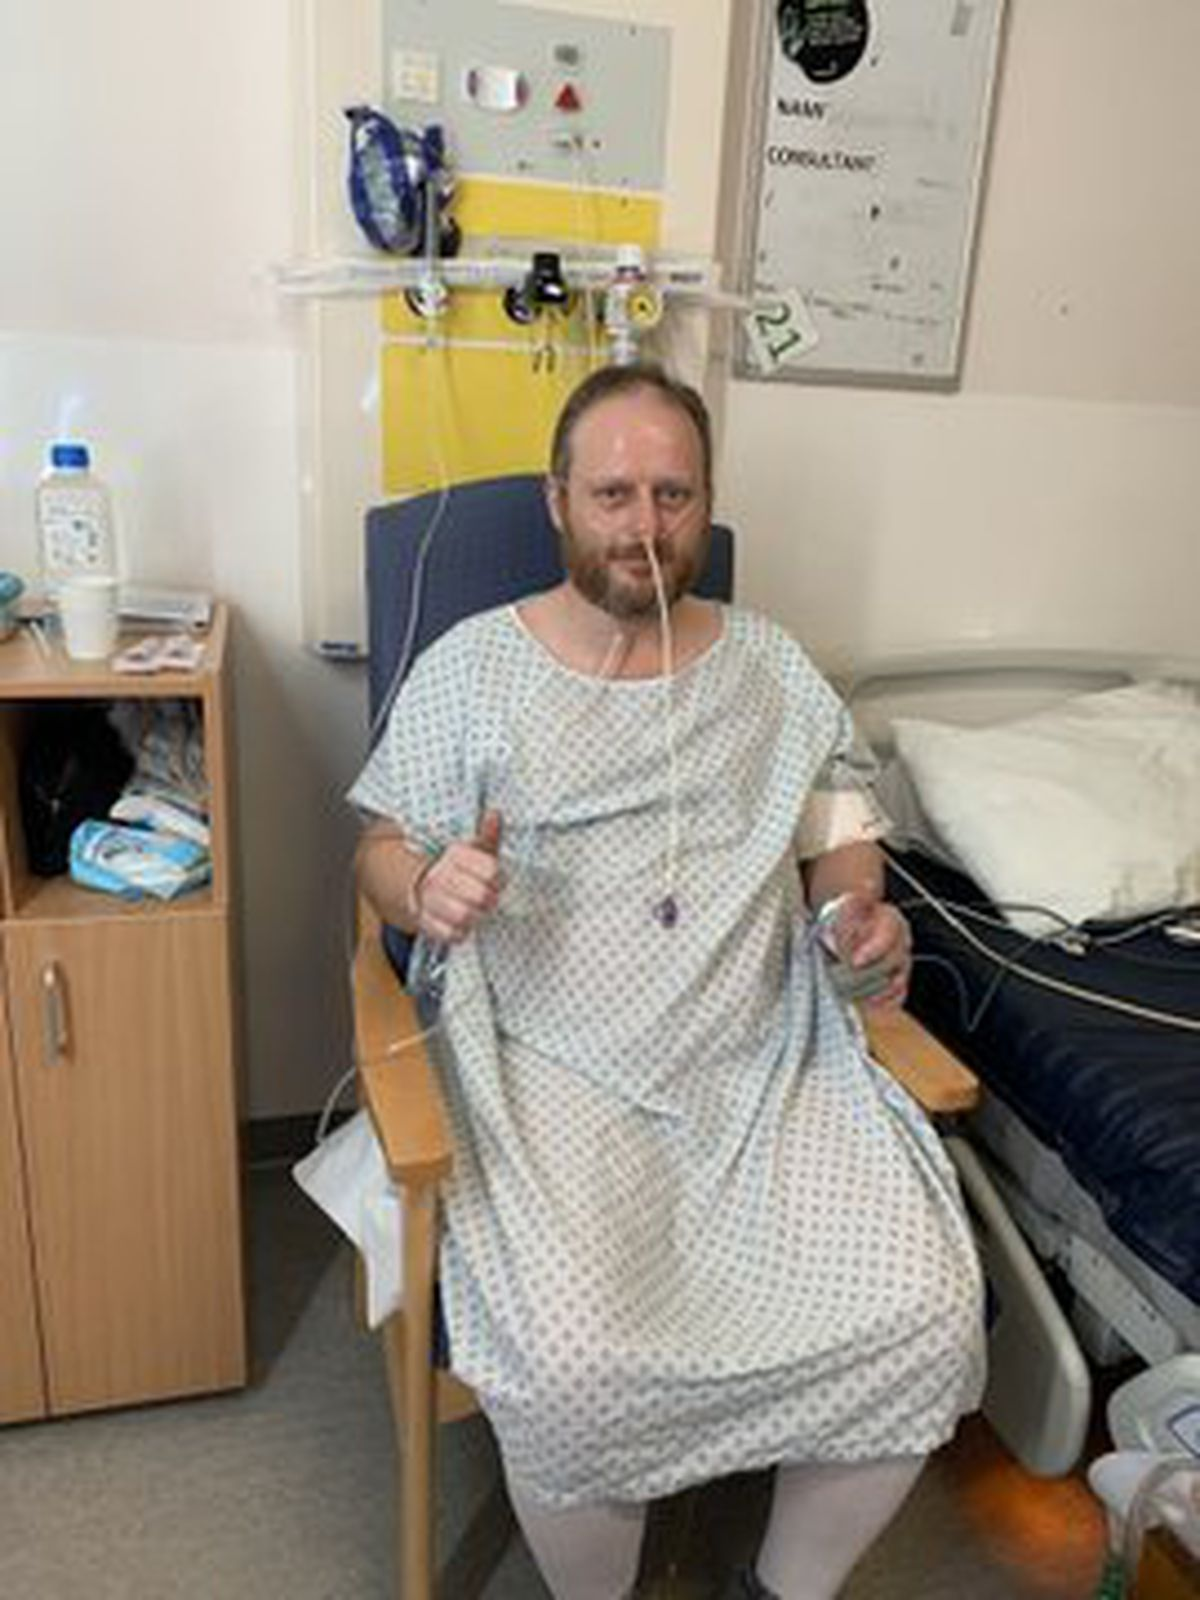 He battled Covid-19, spending nearly a fortnight in intensive care